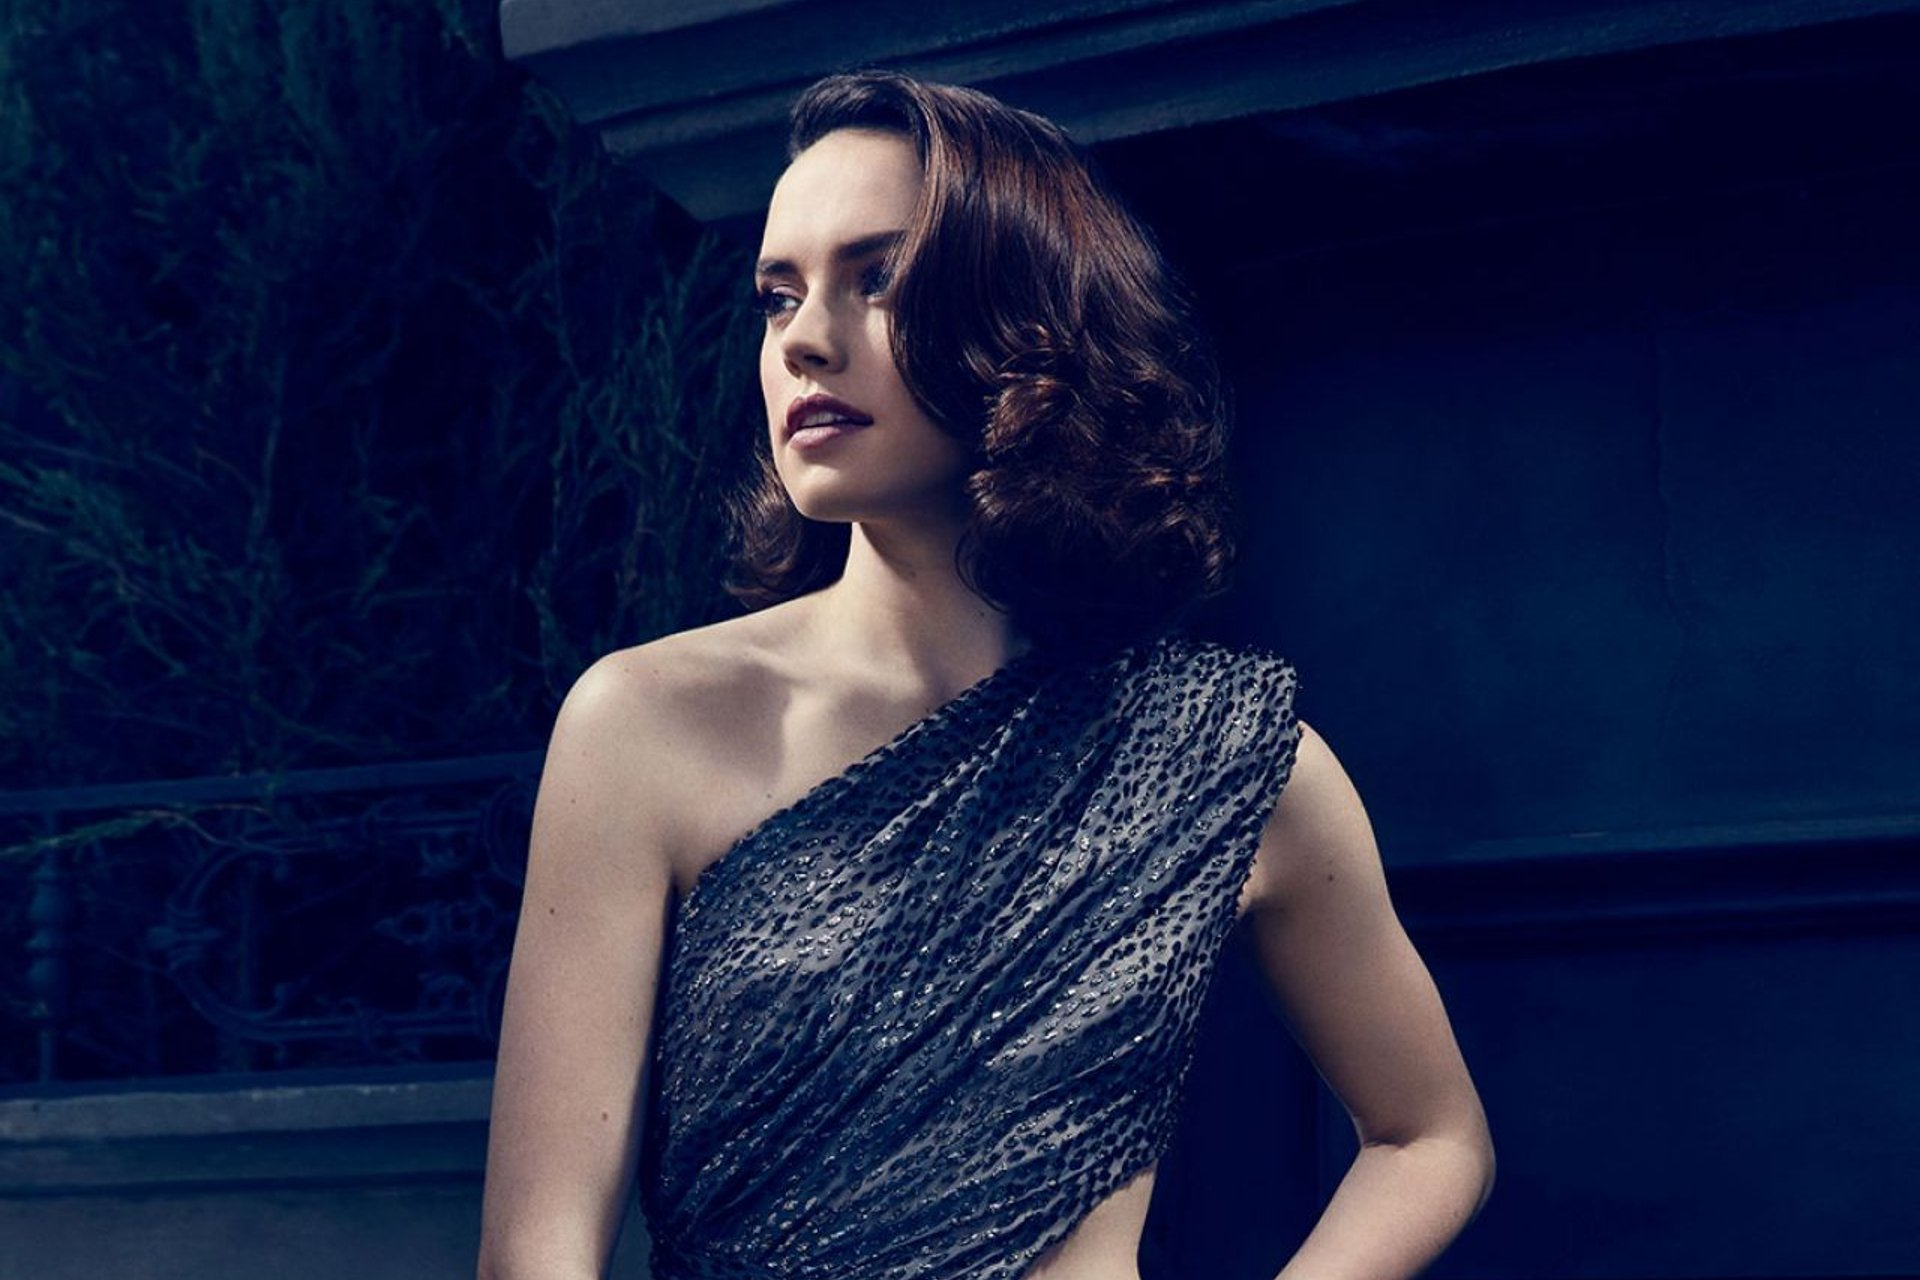 Daisy Ridley Full HD Wallpaper And Background Image